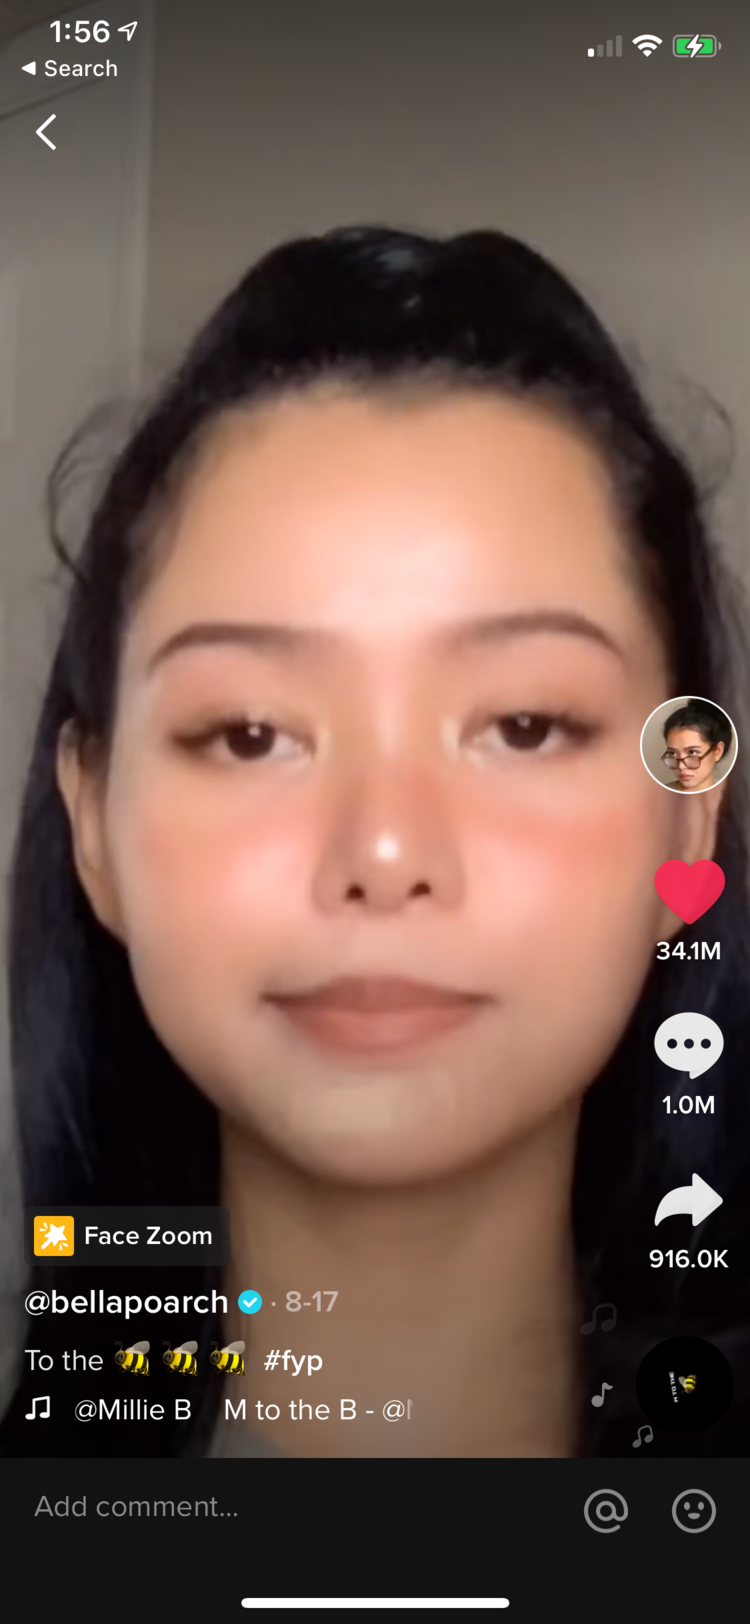 """This  is, as of right now, the most popular TikTok ever. By the time I publish this post, its 34.1M likes will likely be outdated. You can read  the story of how this TikTok even came to be  and it will still feel like a cultural conundrum wrapped in a riddle stuffed in a paradox, and you love to see it. I showed this to my niece, we looped it a few dozen times, then we started chanting """"M to the B, M to the B"""" and laughing our asses off and it was one of the only times in this pandemic I've truly felt anything other than despair."""